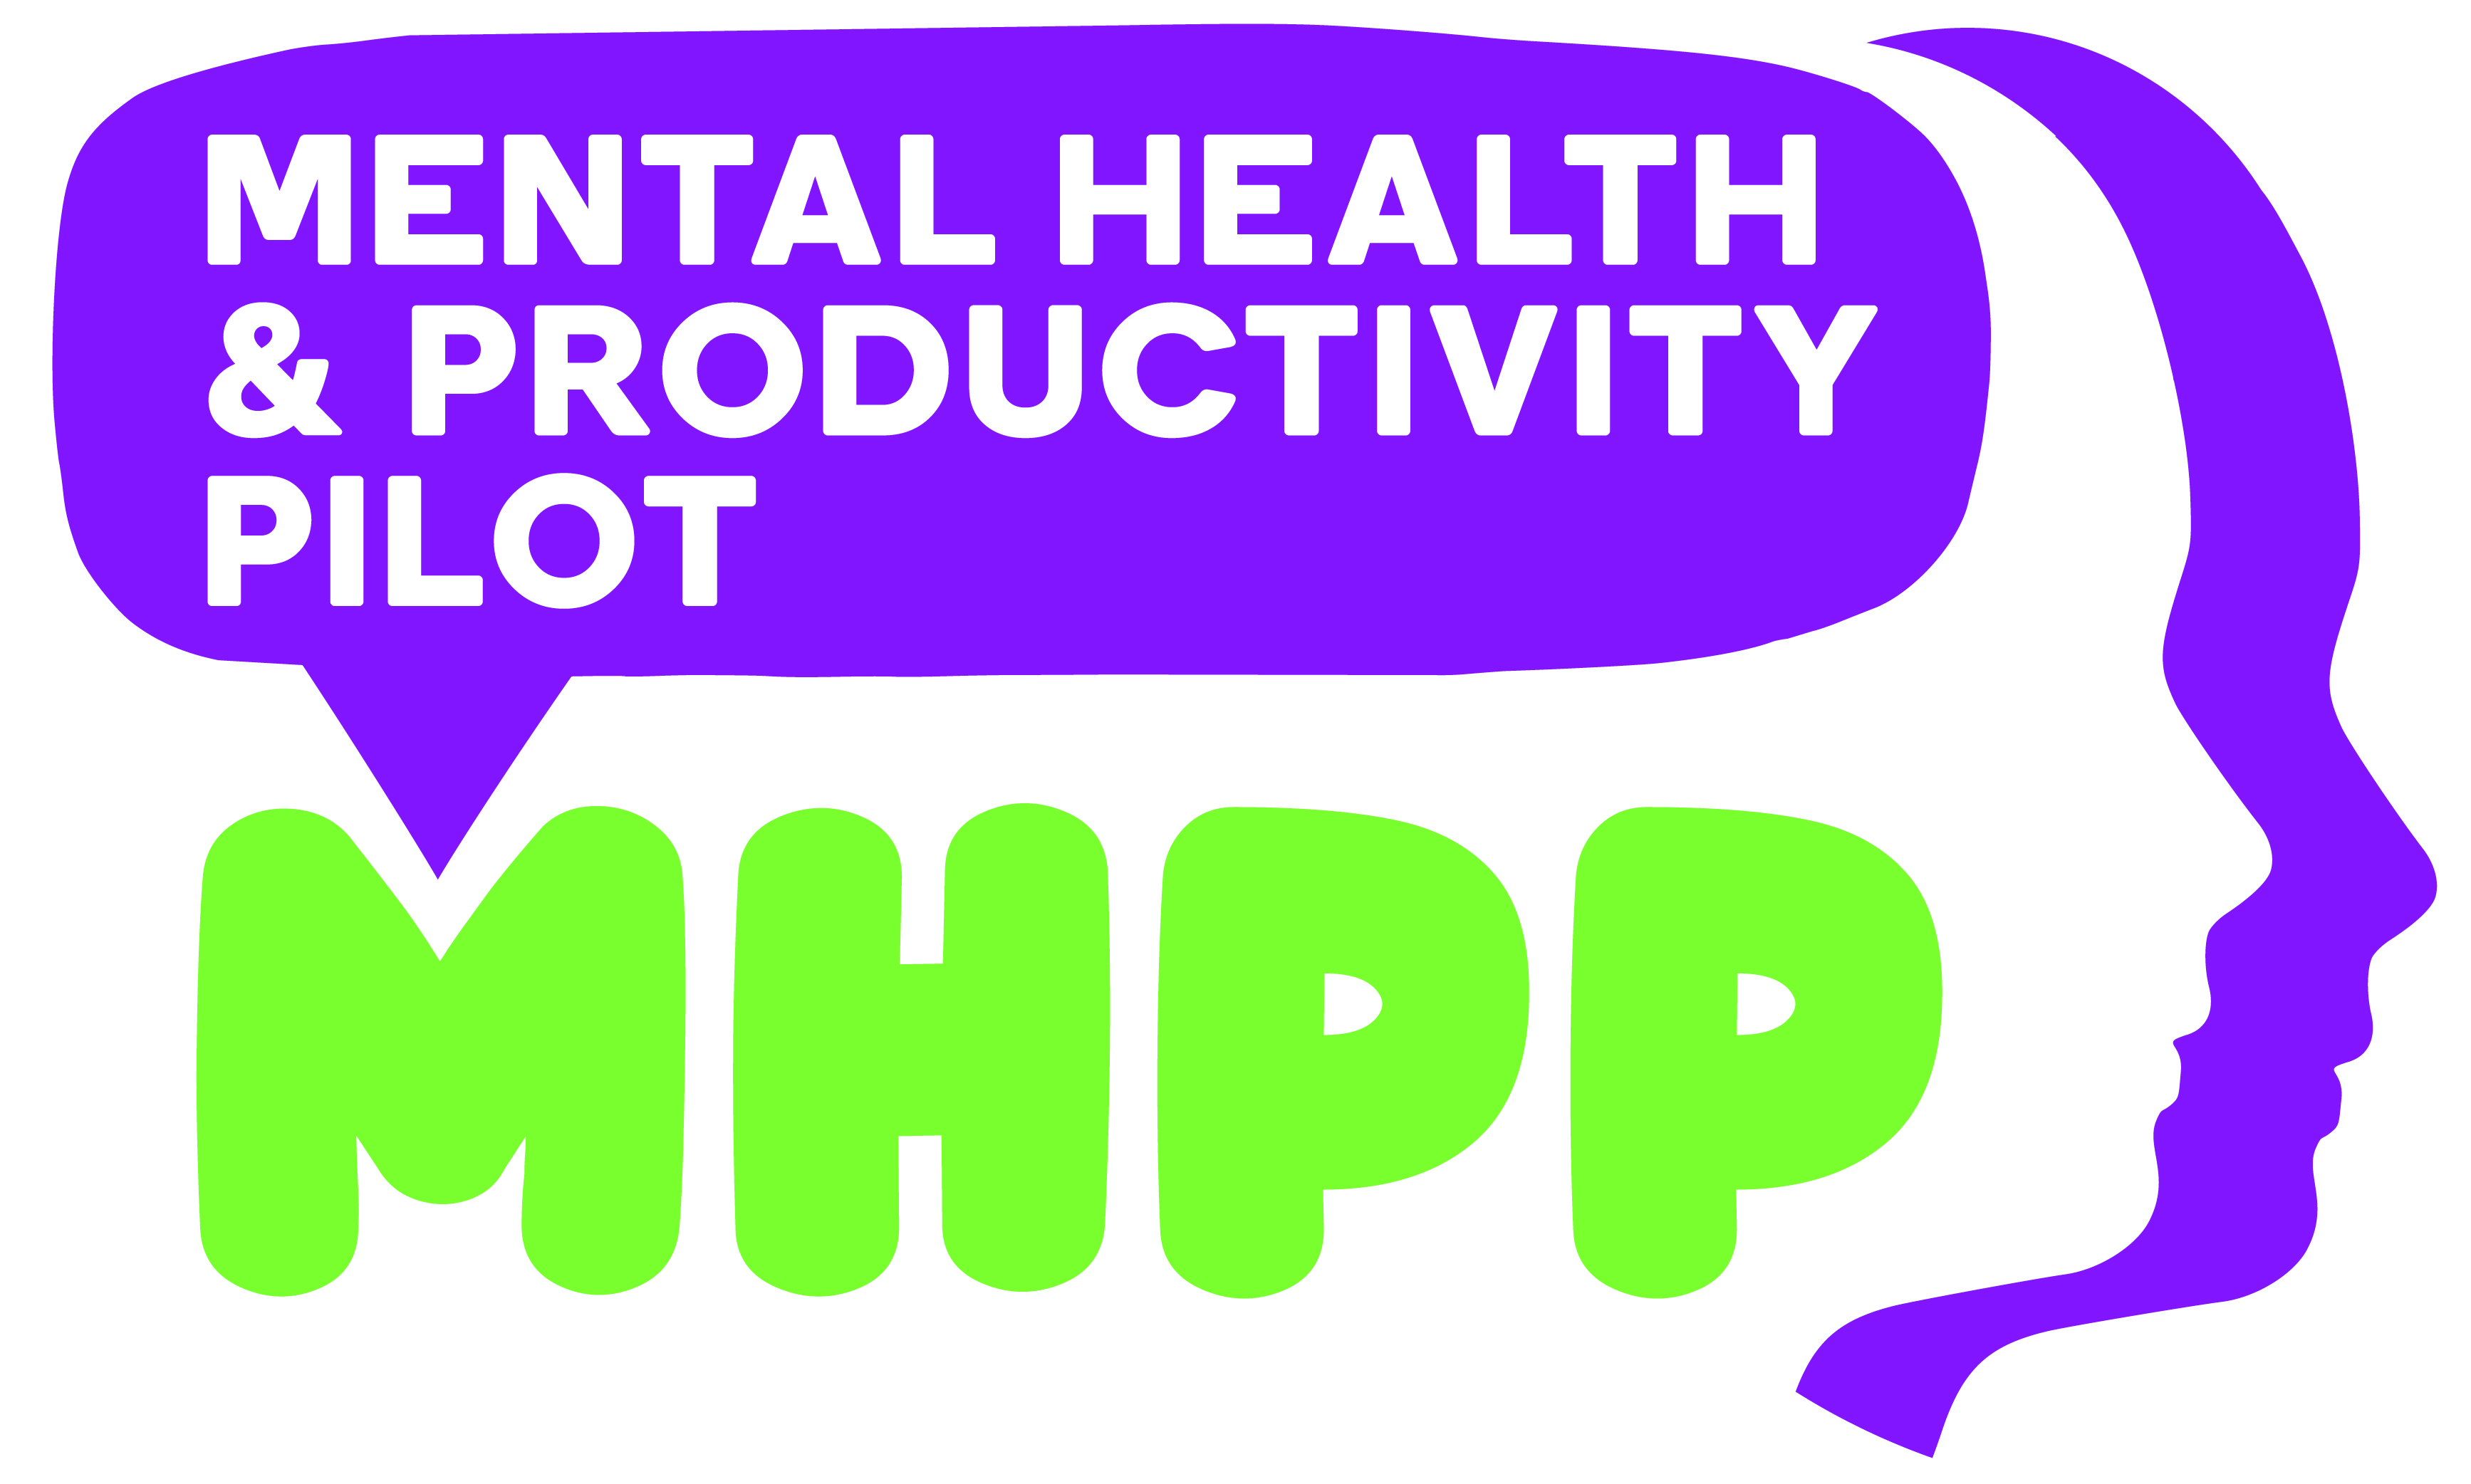 Midlands Engine Mental Health and Productivity Pilot